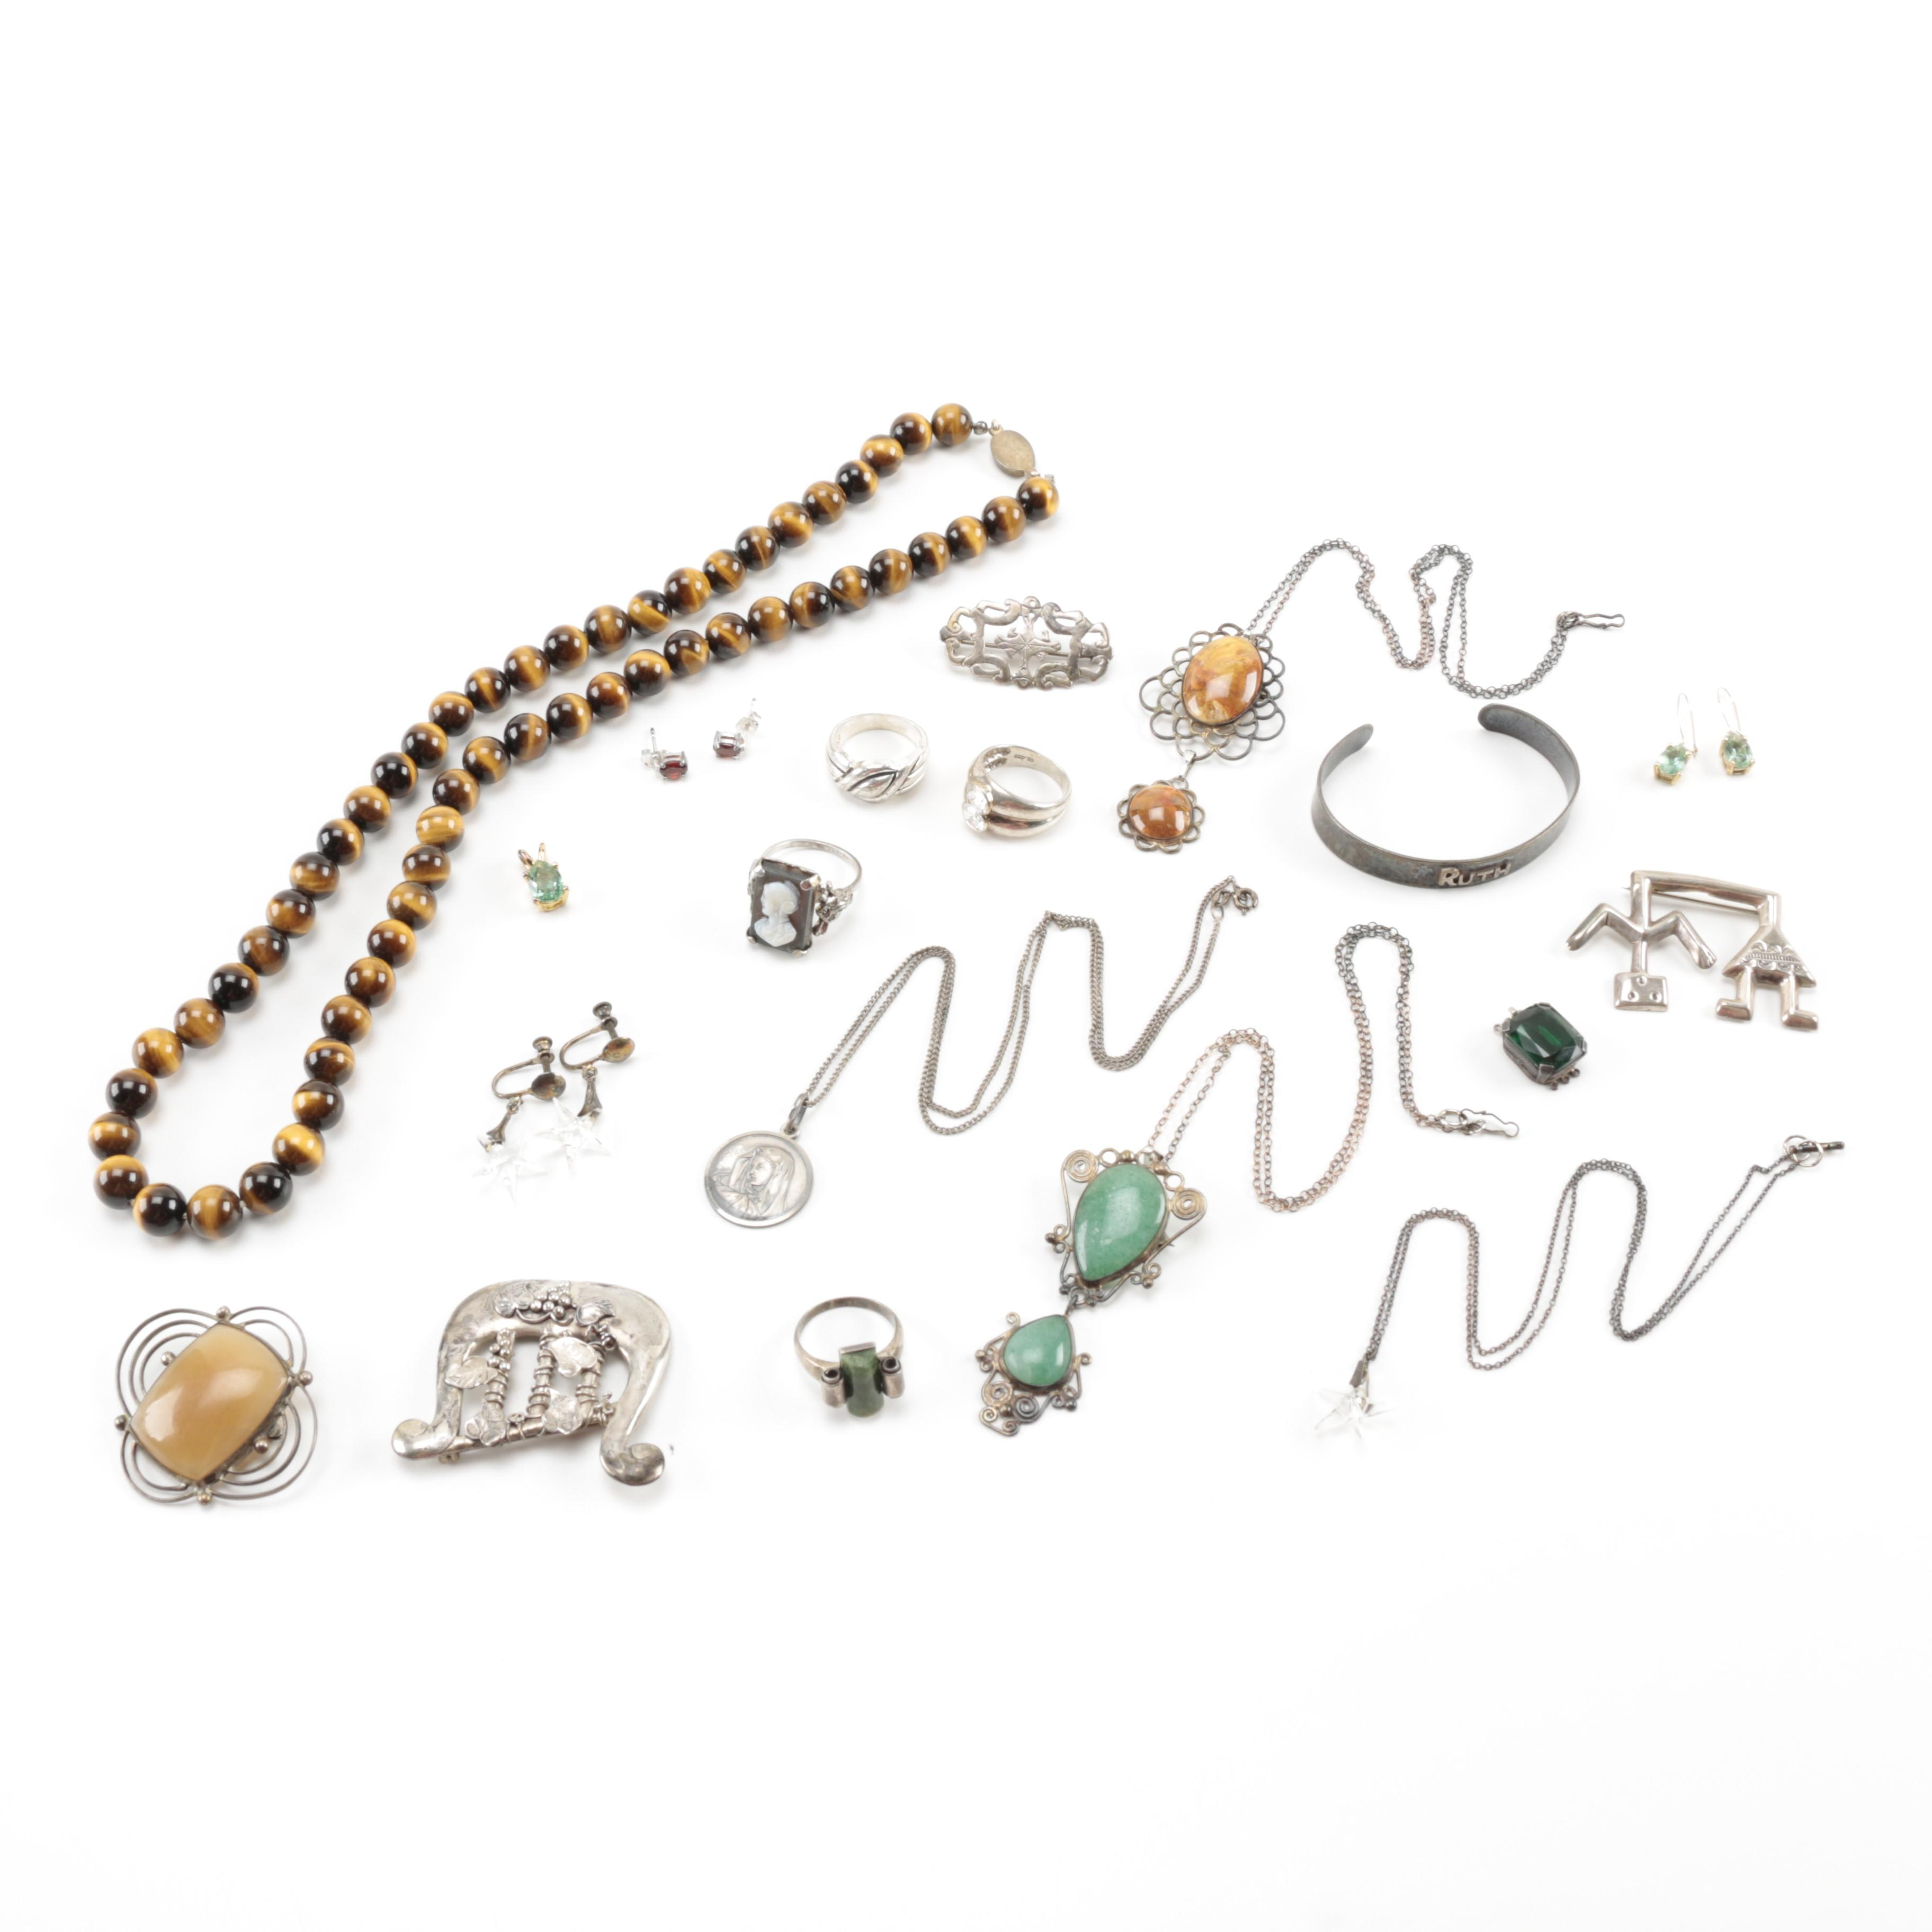 Sterling Silver Jewelry Including Vintage Pieces